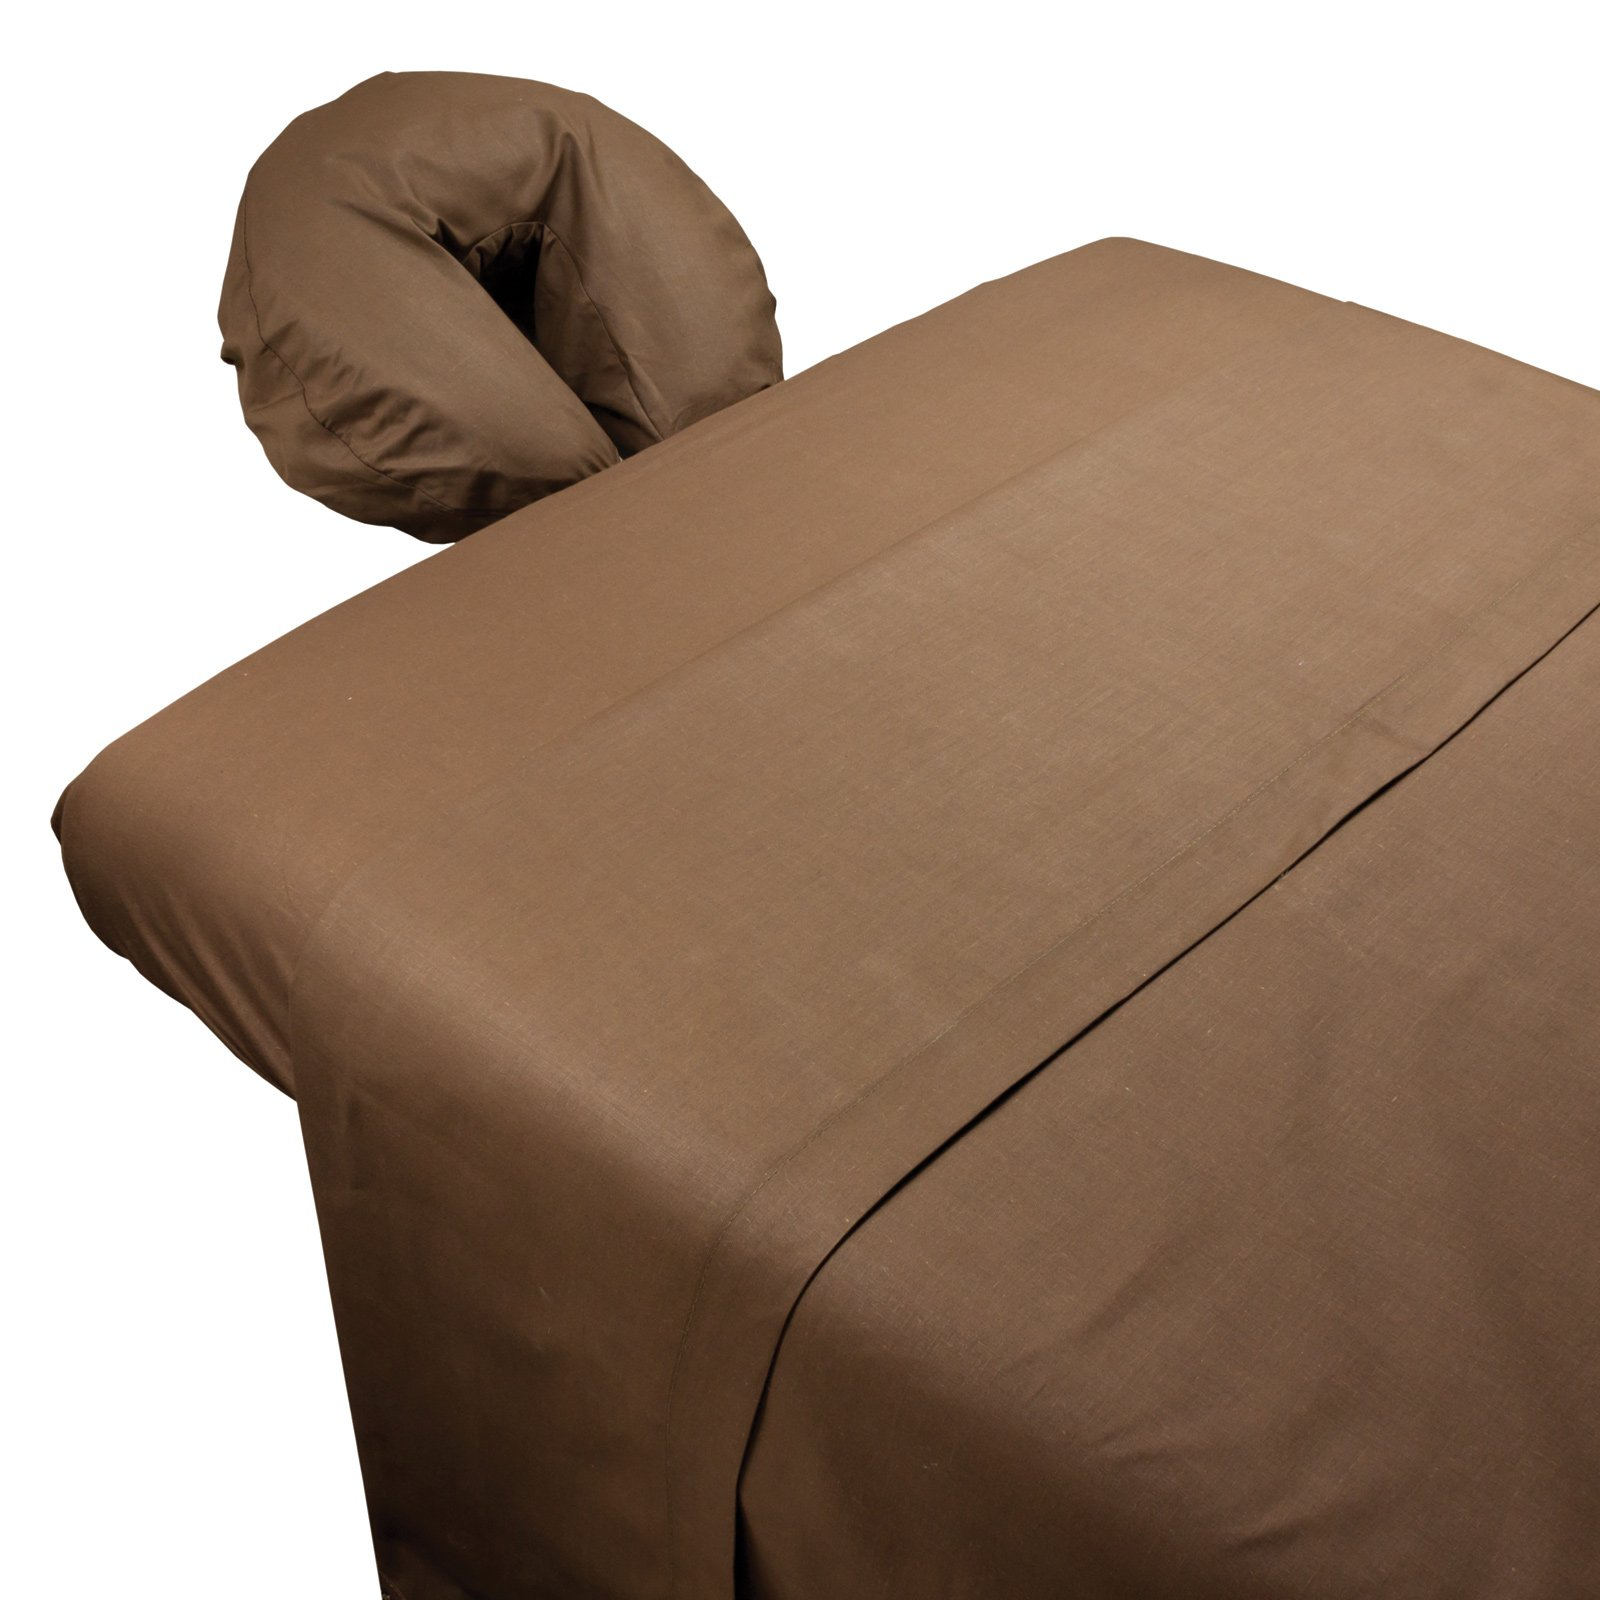 Massage Table Sheet Set by Body Linen - Extra-Large Sheet For Optimum Coverage and Fit With Standard Size Tables and Face Cradles - Super Soft and Durable For Professional Use {Chocolate Poly/Cotton}